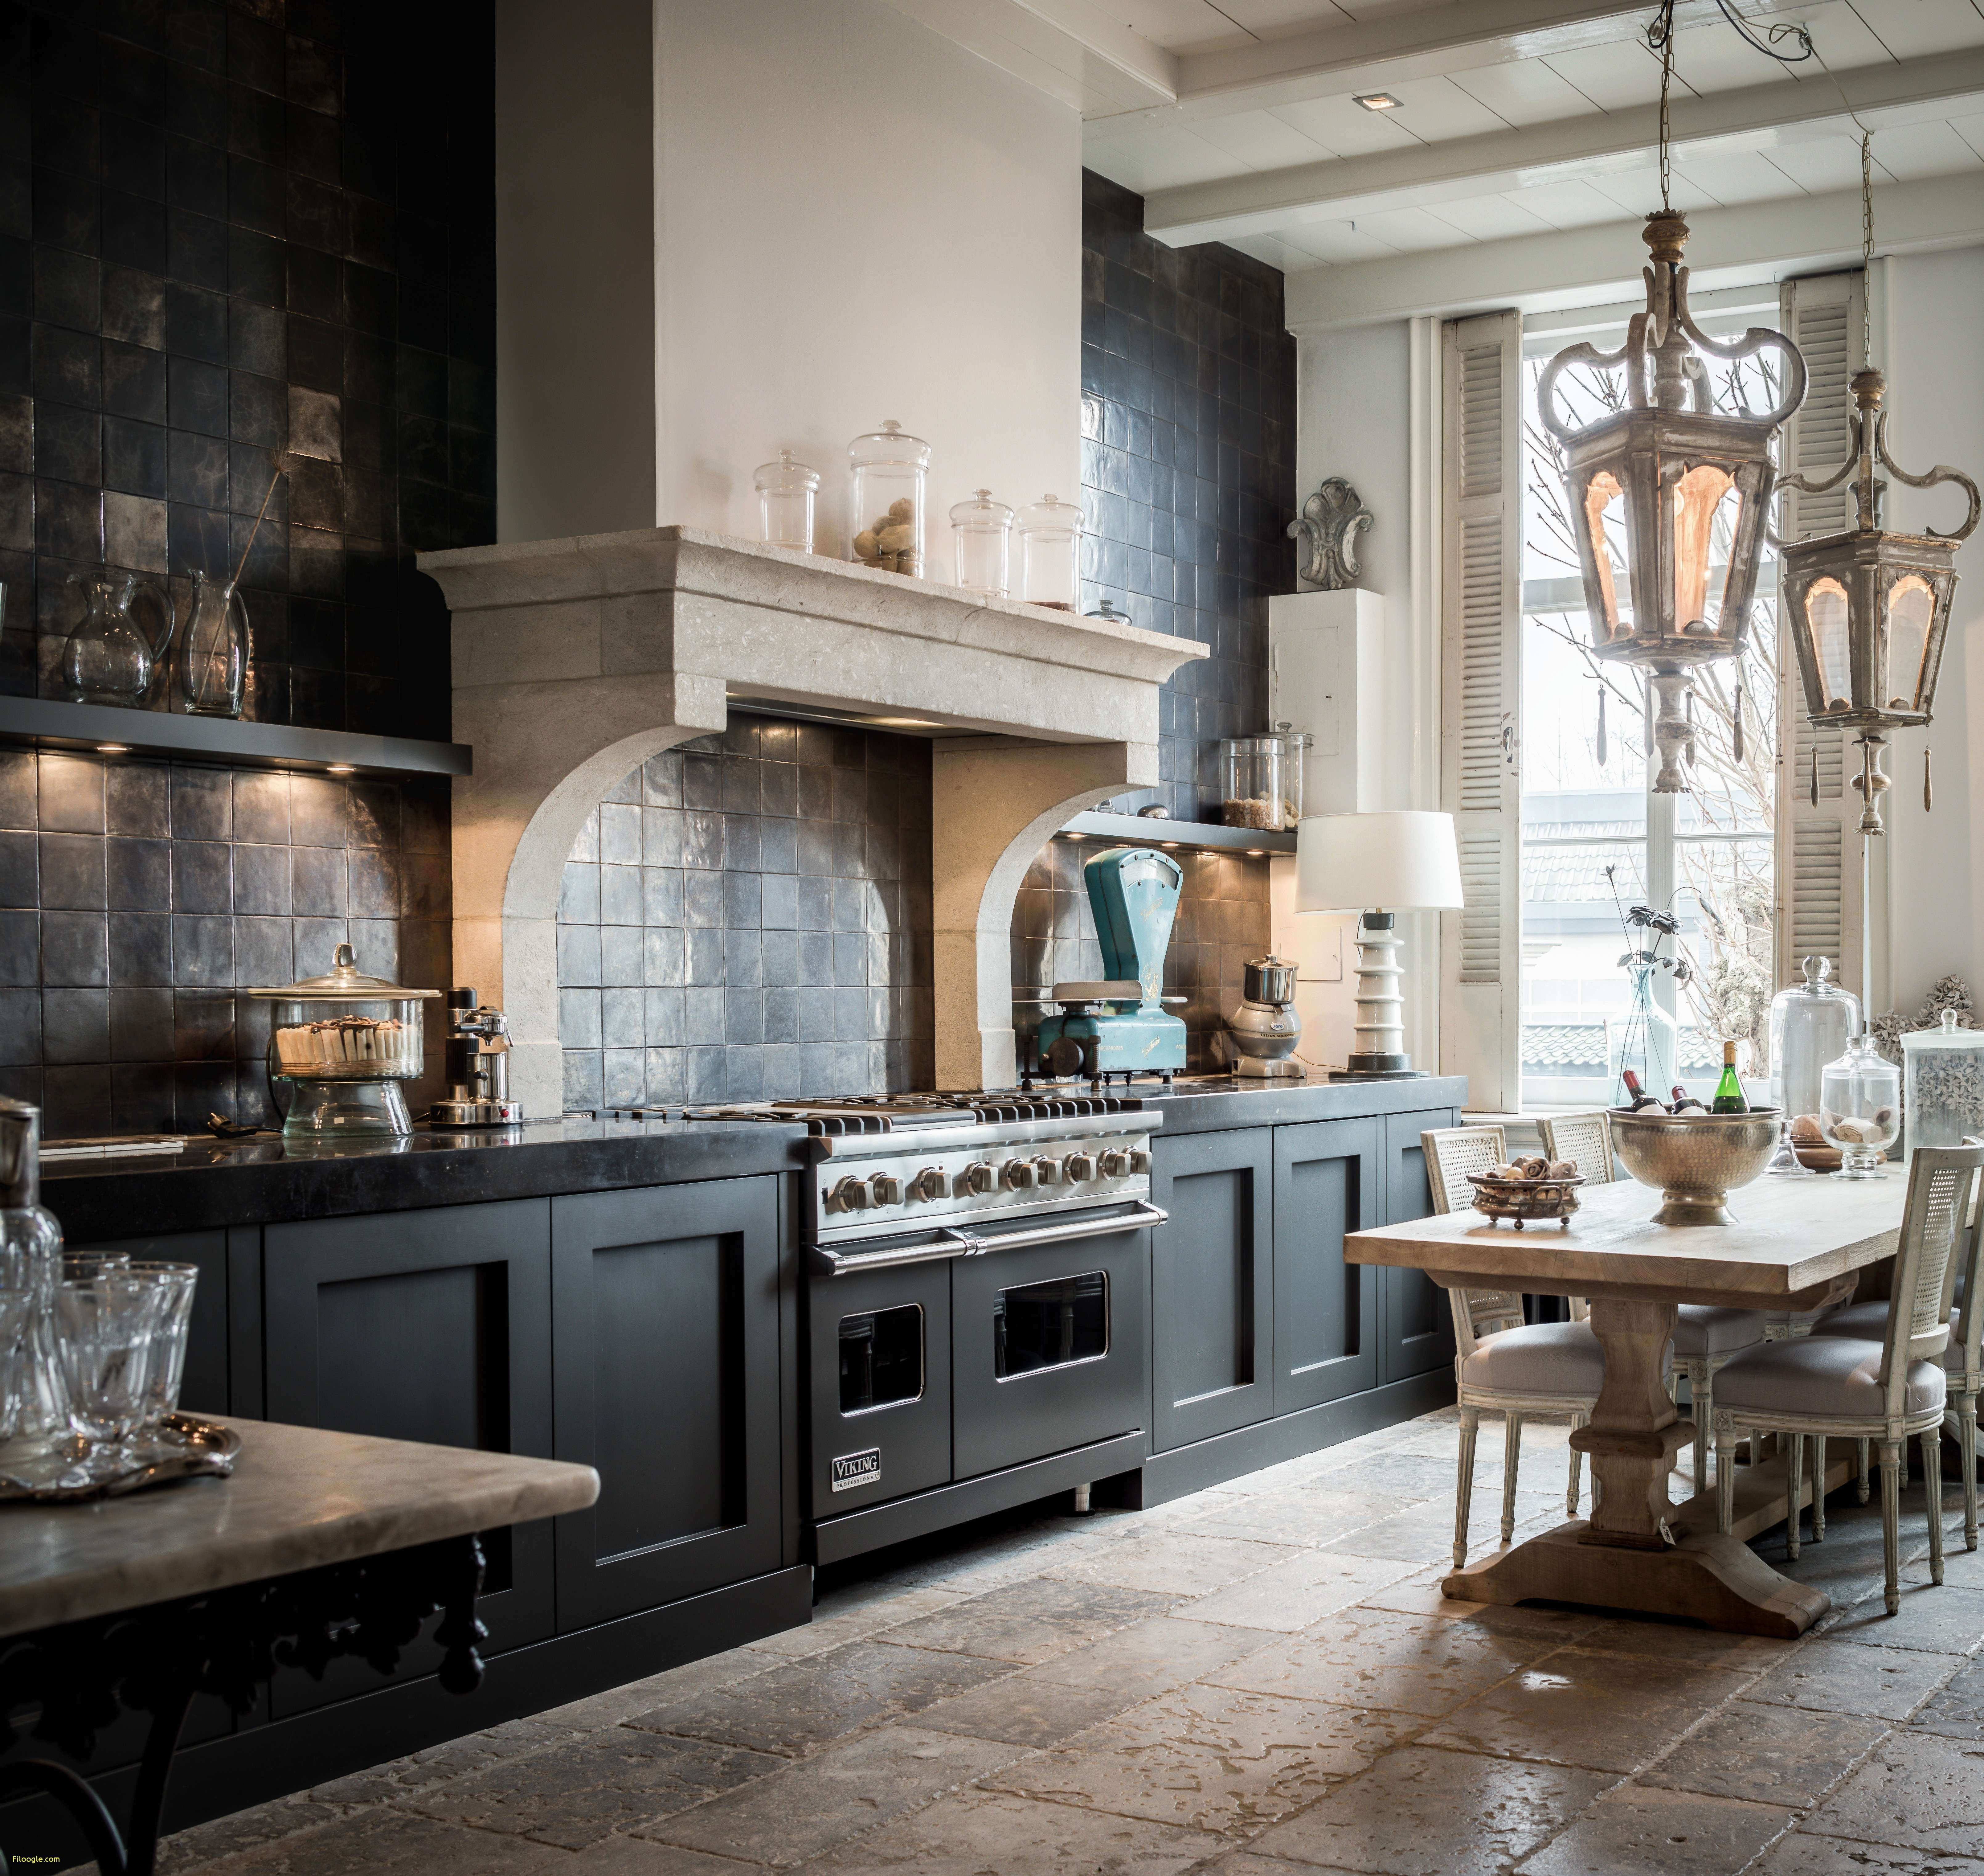 Small Home Decor Stores Lovely Kitchen Decor Items Luxury Kitchen